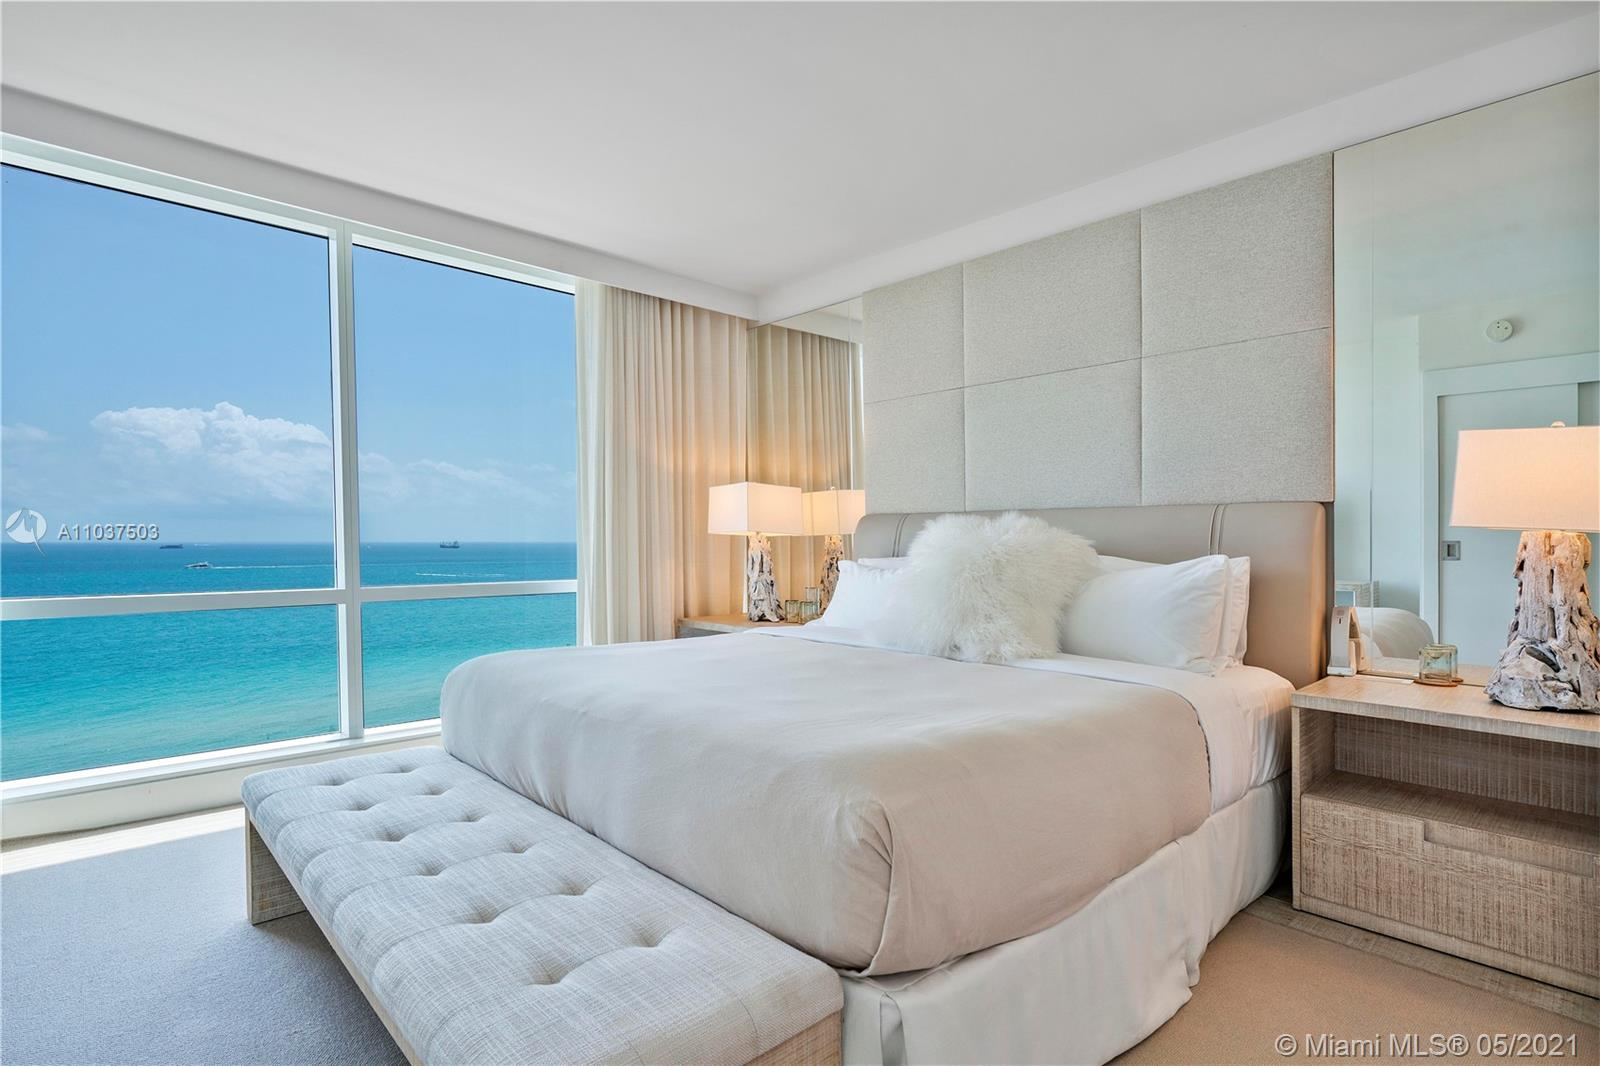 The perfect Miami Beach spot to relax and enjoy 5 star resort living. Custom furniture package carefully and thoughtfully selected by acclaimed interior decorator Debra Aguiar.  Enjoy resort-style living with an array of 5-star white-glove services at the property to include a 14,000 Sq. Ft. gym, spa, chauffeured Teslas, private rooftop pool & bar, 4 restaurants, 4 bars & much more.